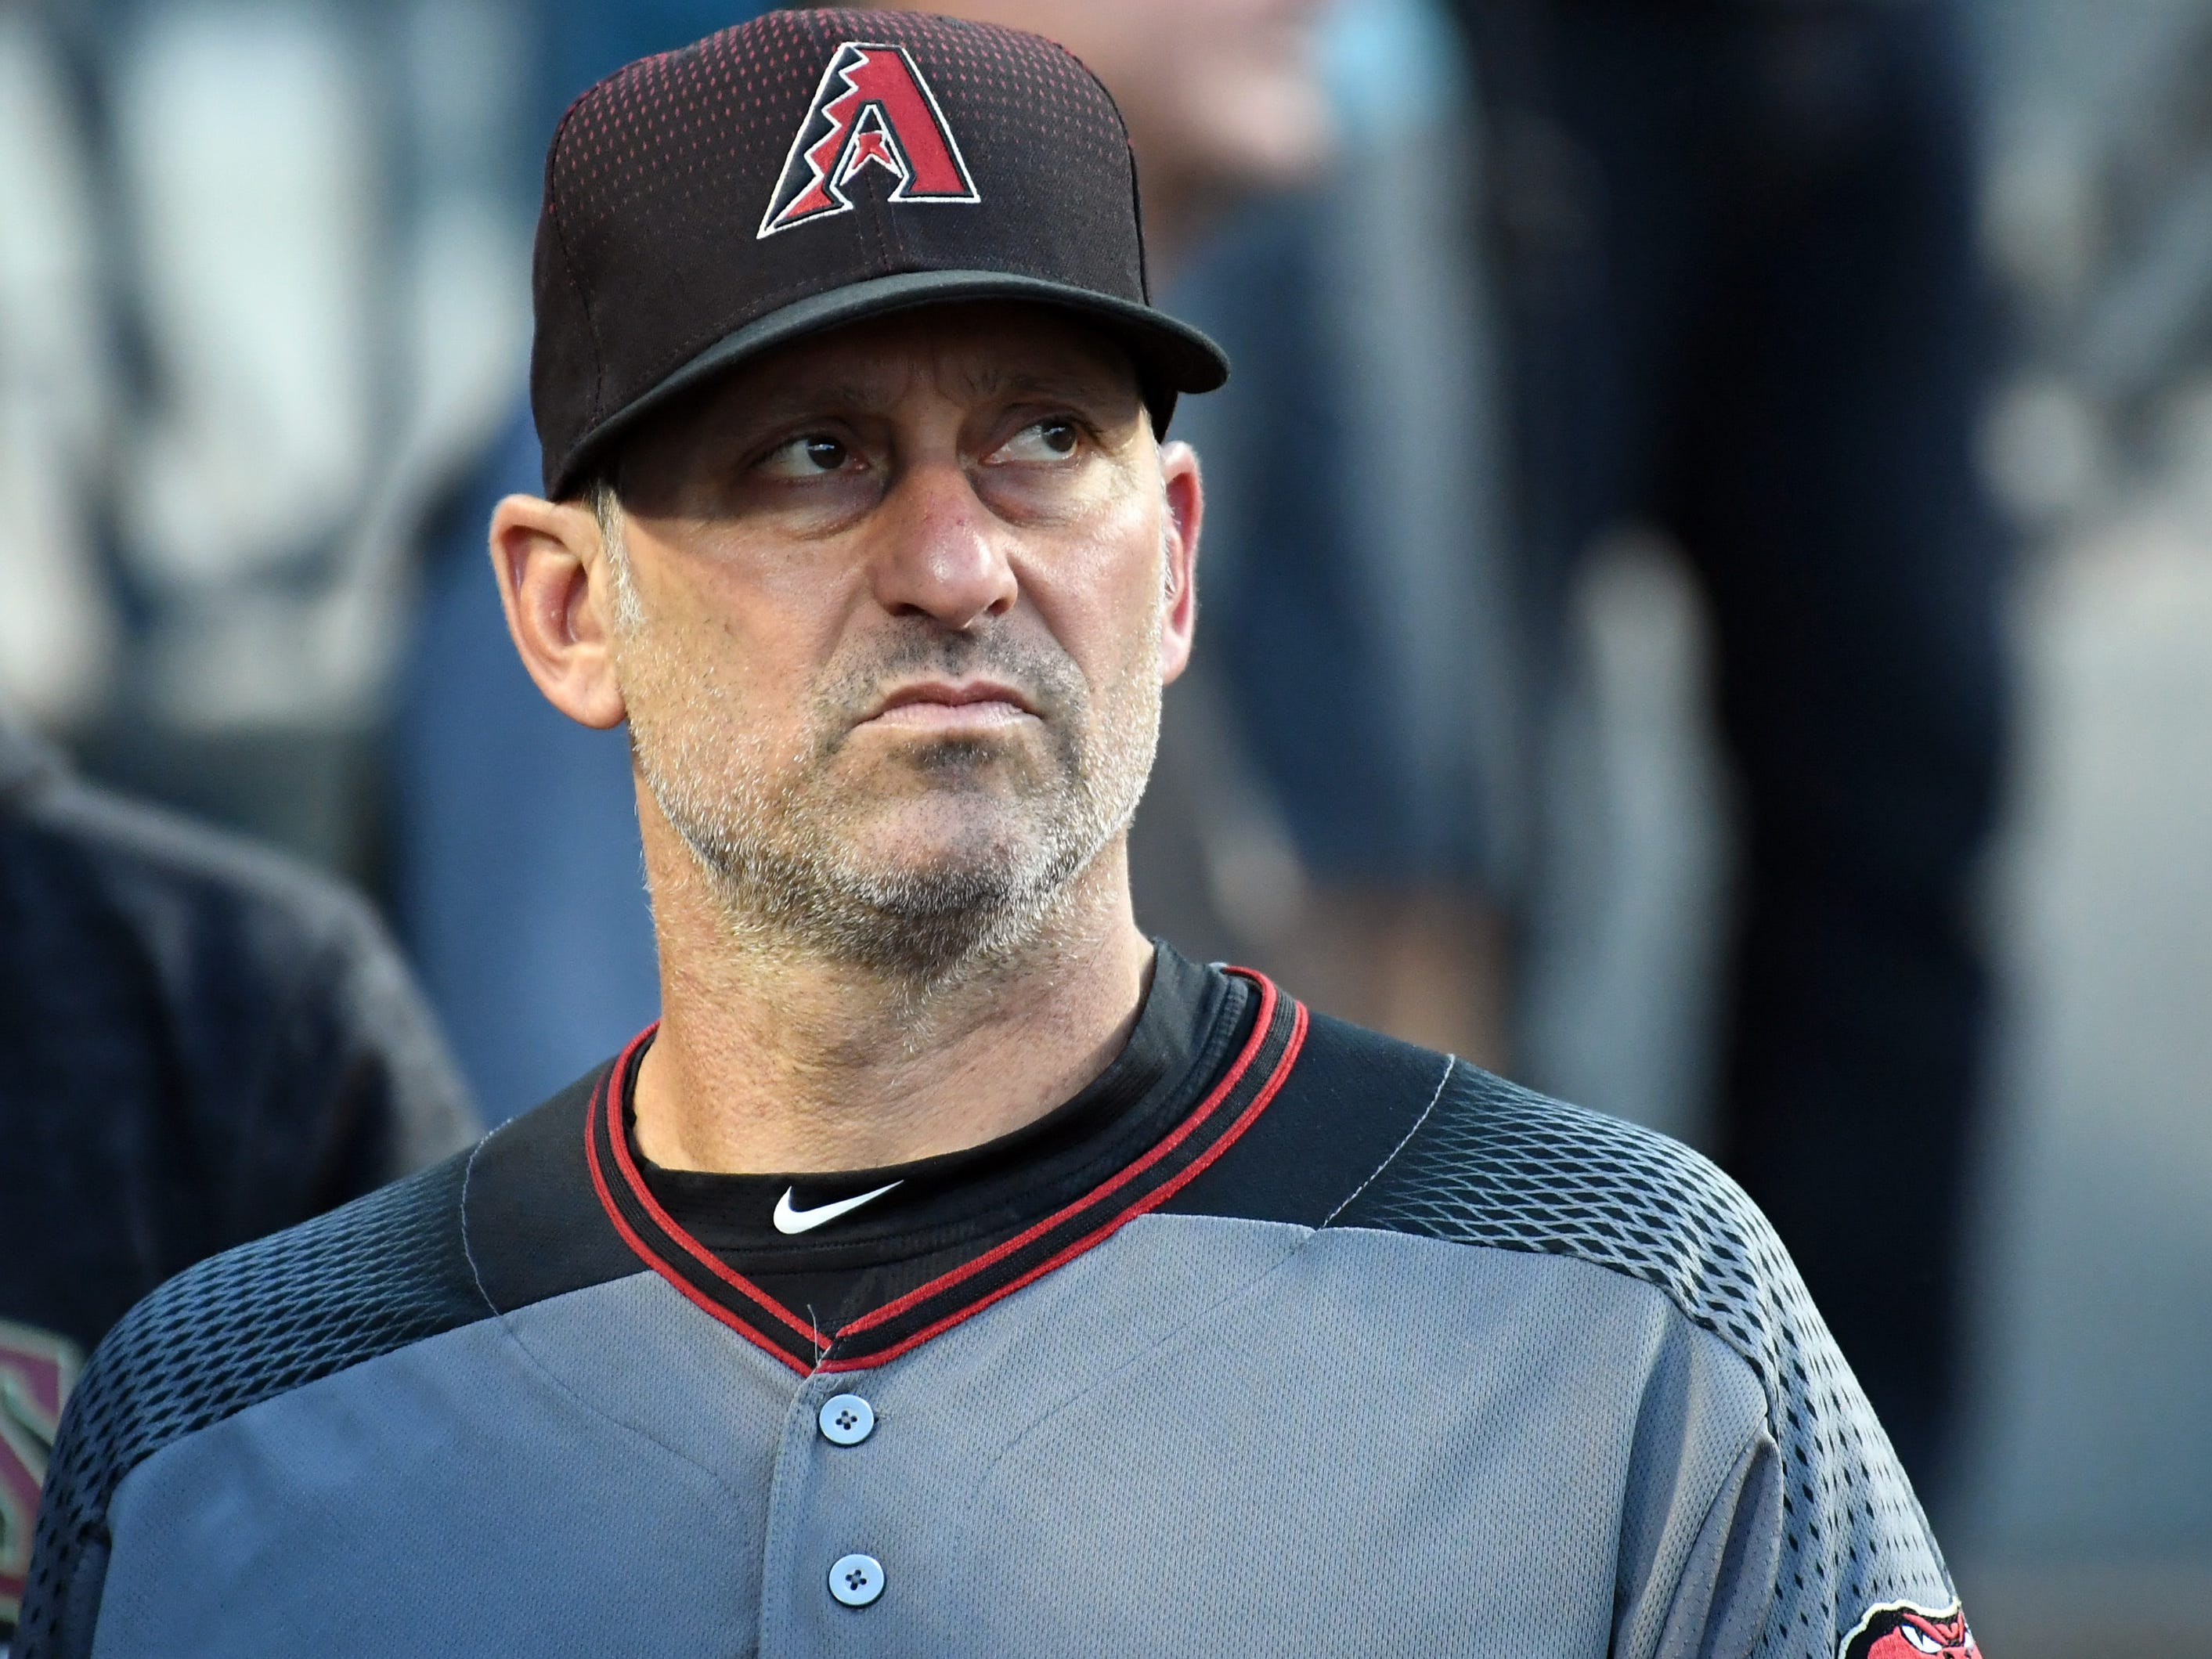 Aug 30, 2018; Los Angeles, CA, USA; Arizona Diamondbacks manager Torey Lovullo (17) looks on before the game against the Los Angeles Dodgers at Dodger Stadium. Mandatory Credit: Richard Mackson-USA TODAY Sports